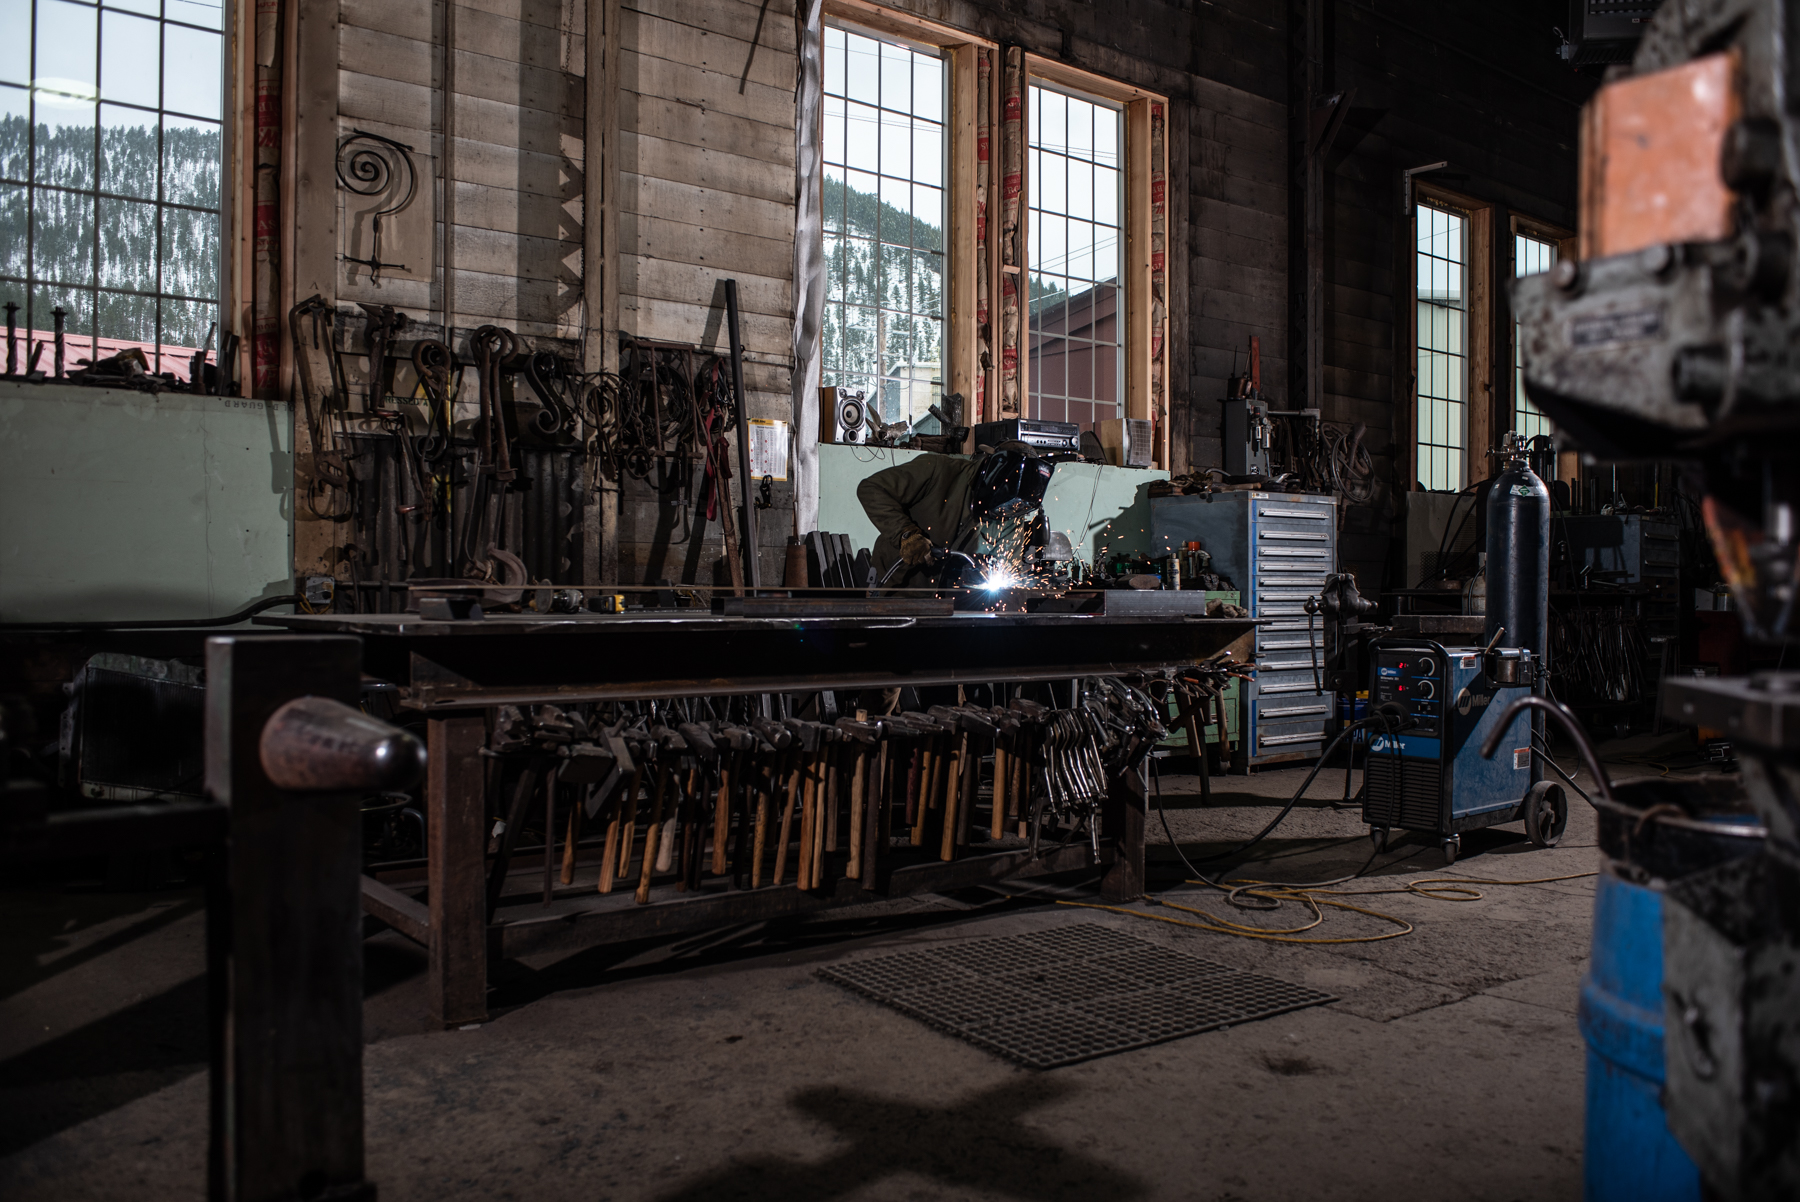 Welder in old industrial building. Isaac Miller Photography  | Agriculture & Industry Photographer  |  Commercial & Editorial photography  |   Missoula + San Antonio